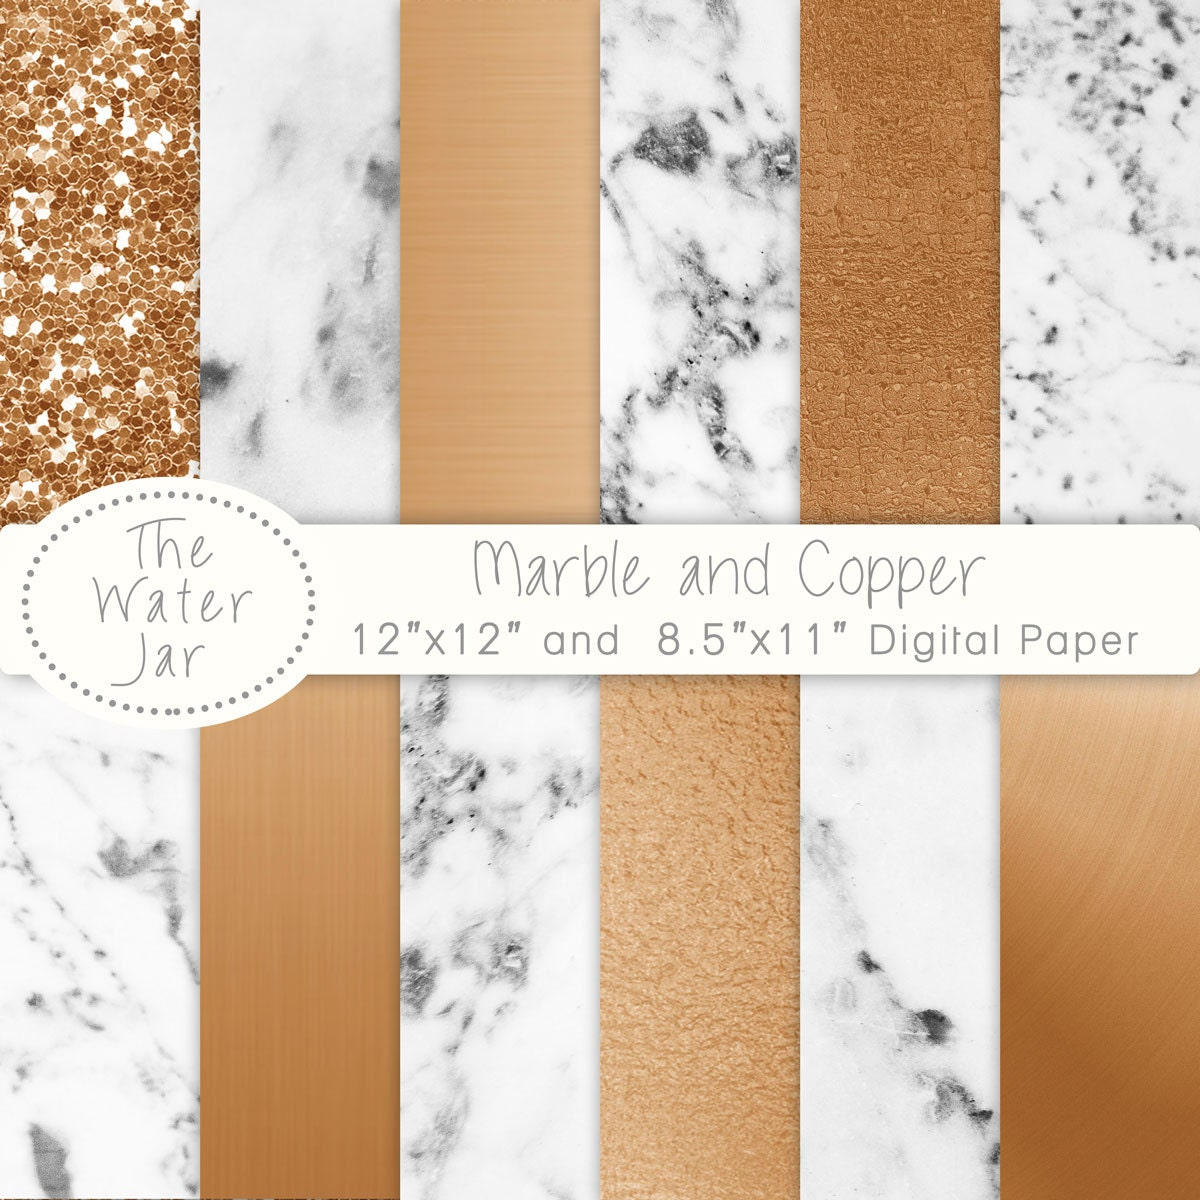 Simple Wallpaper Marble Copper - il_fullxfull  Pic_632793.jpg?version\u003d1